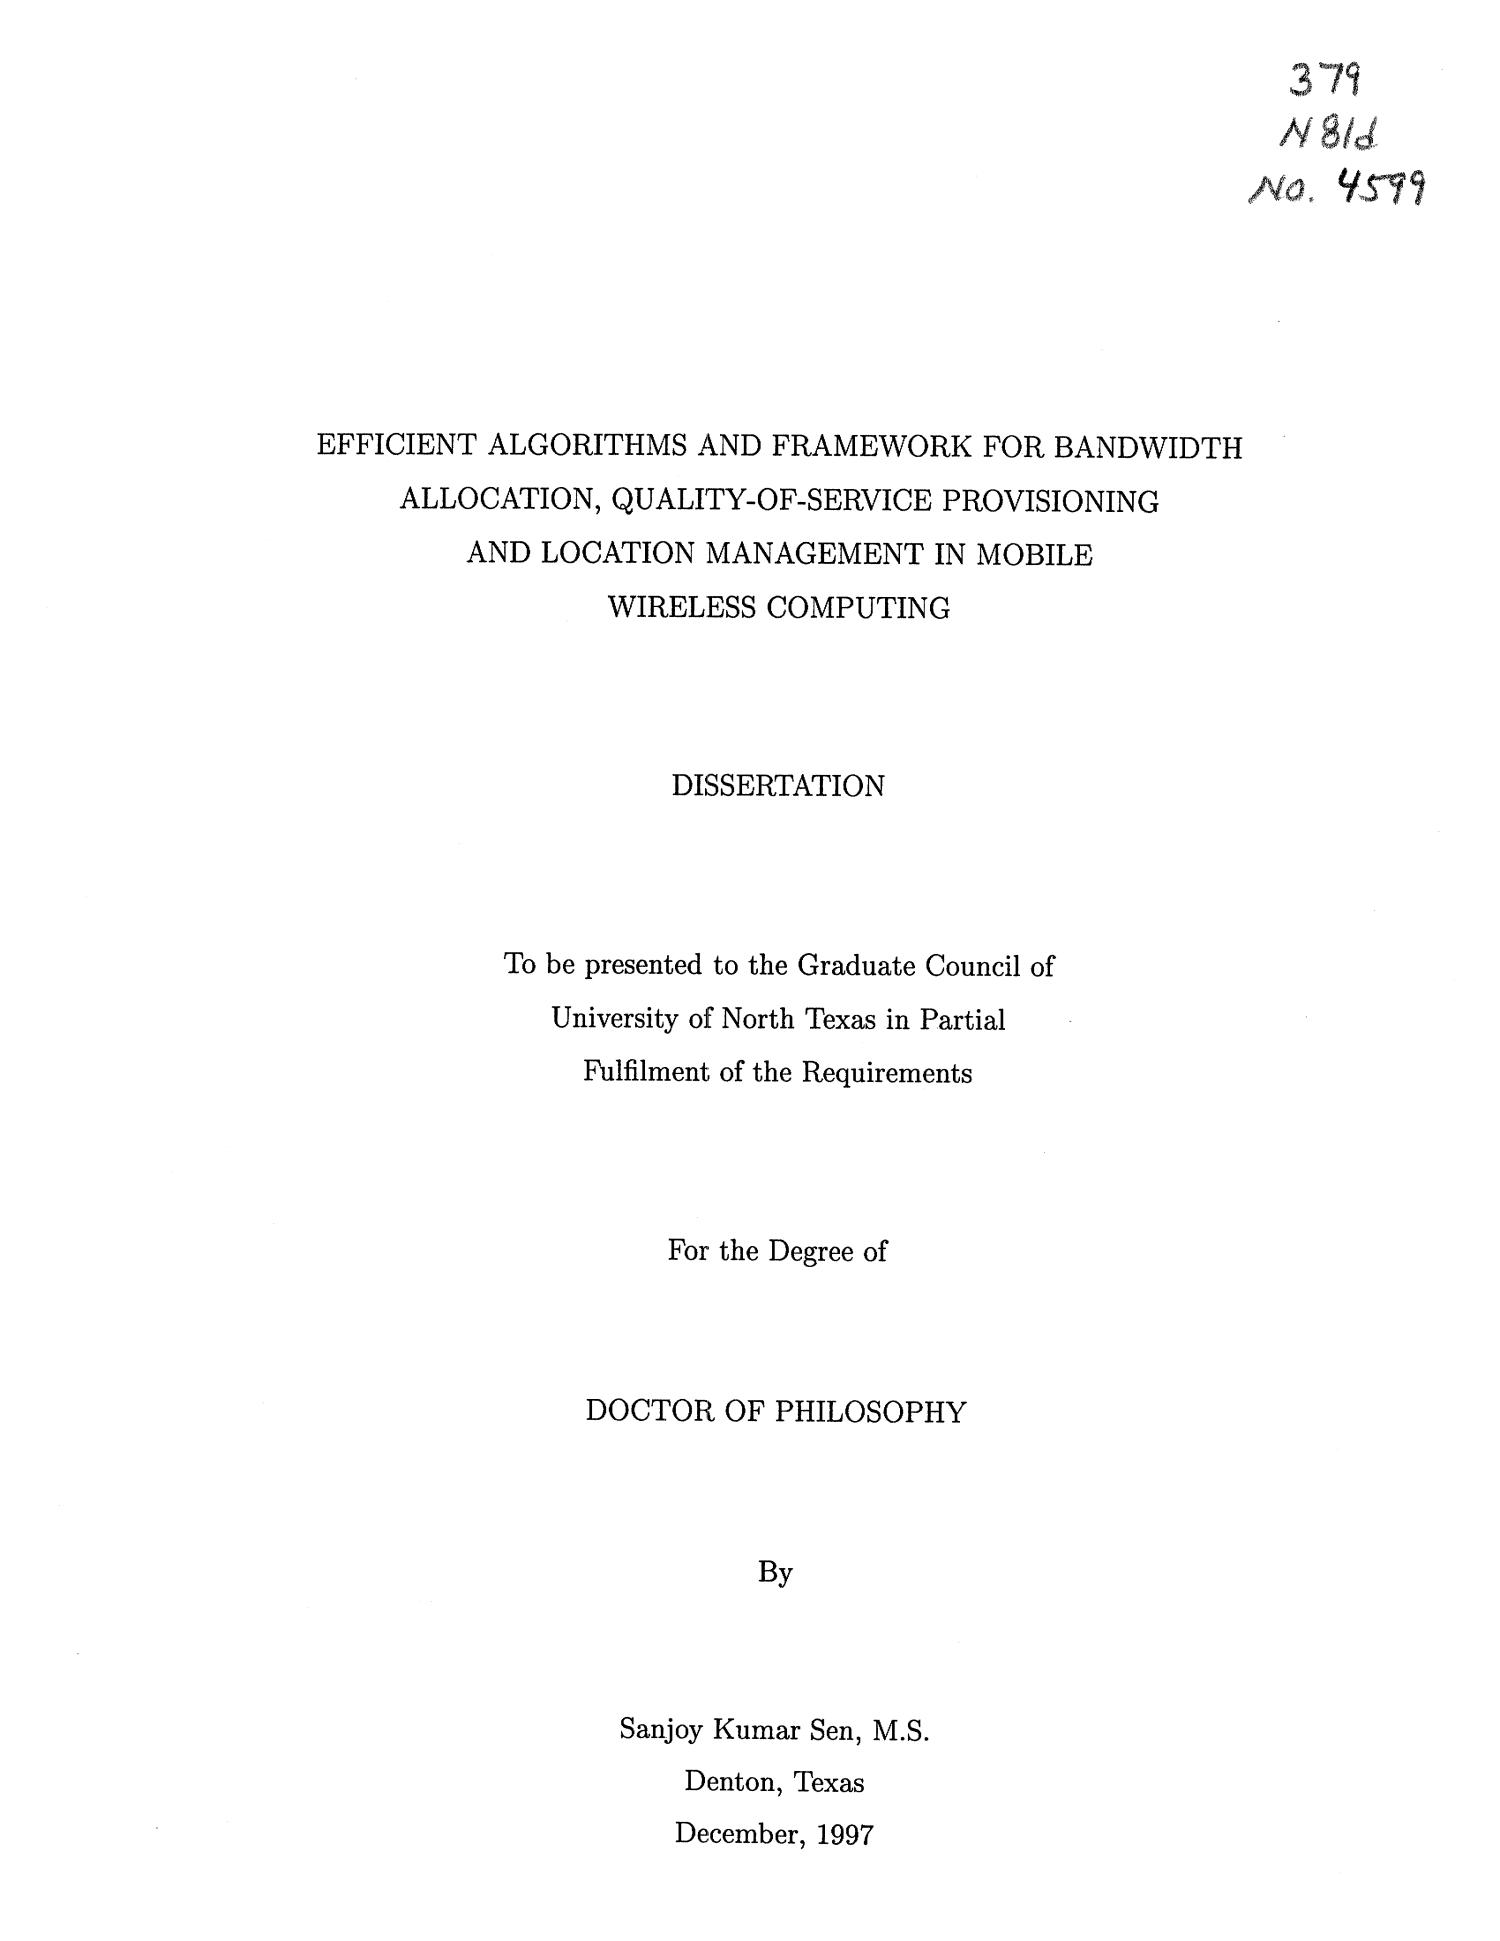 Efficient Algorithms and Framework for Bandwidth Allocation, Quality-of-Service Provisioning and Location Management in Mobile Wireless Computing                                                                                                      Title Page